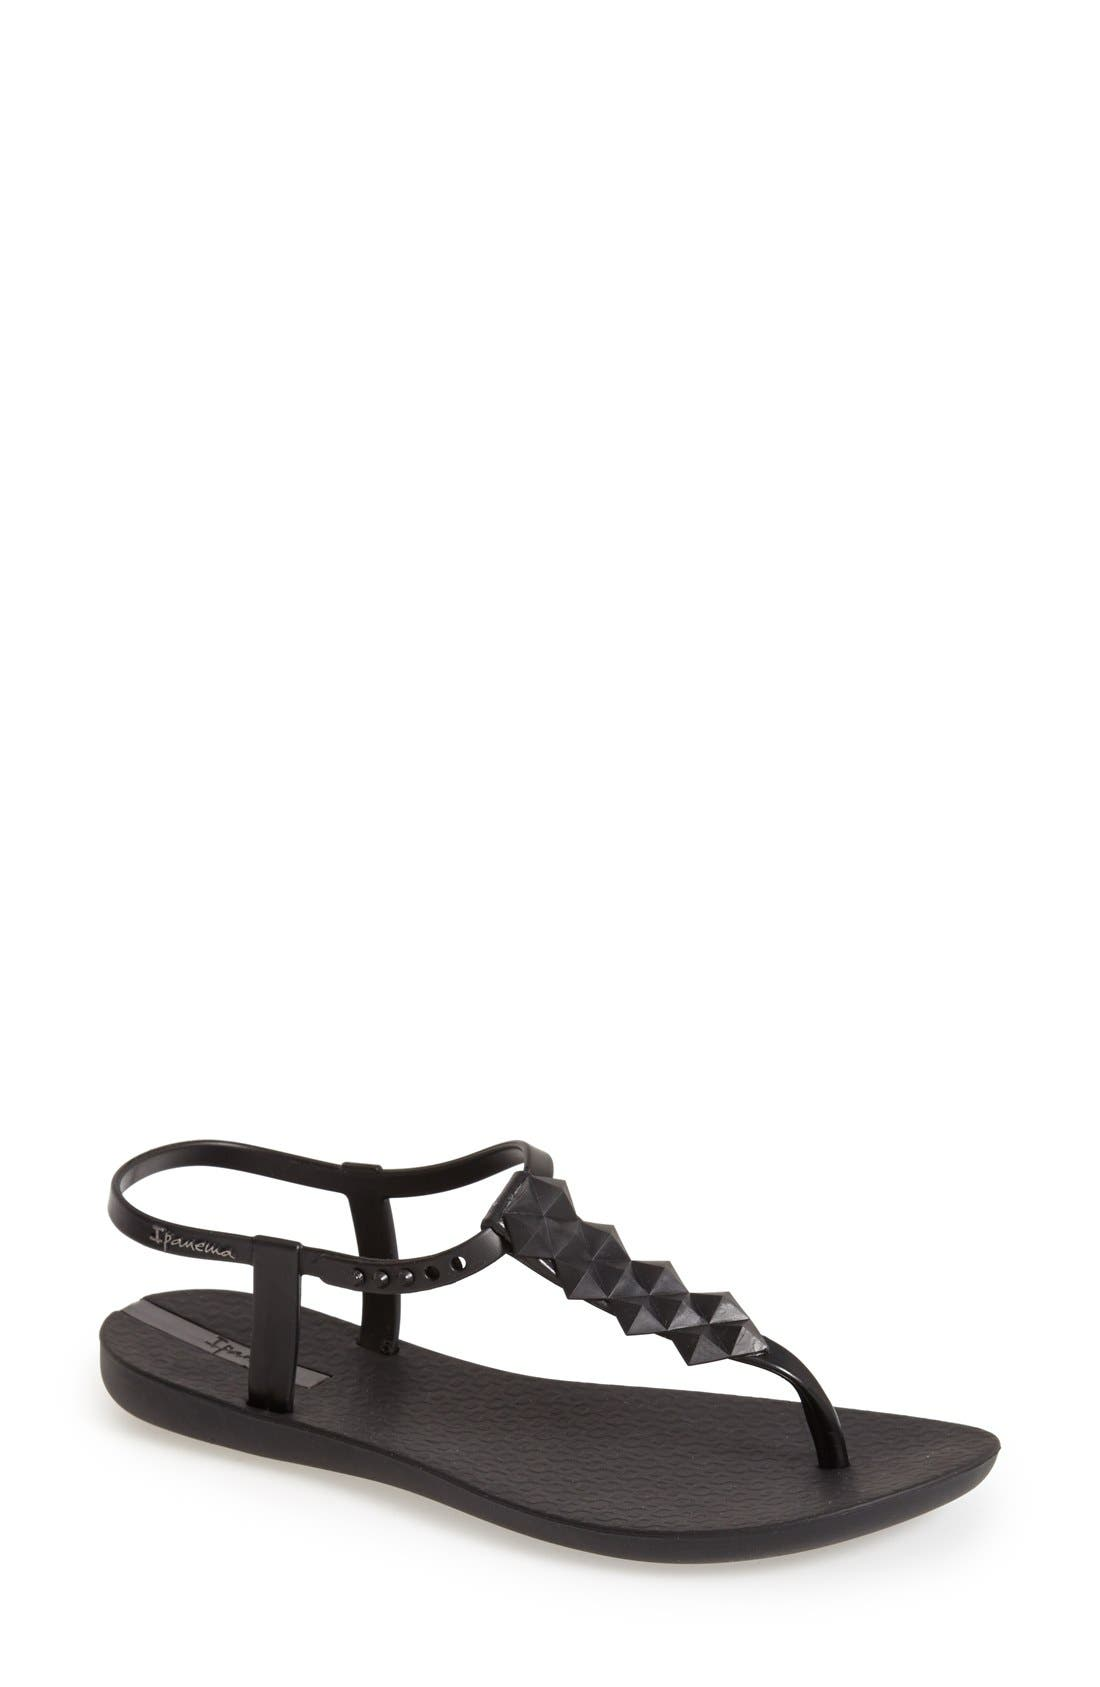 IPANEMA 'Cleo' Pyramid Stud Ankle Strap Flip Flop, Main, color, 001